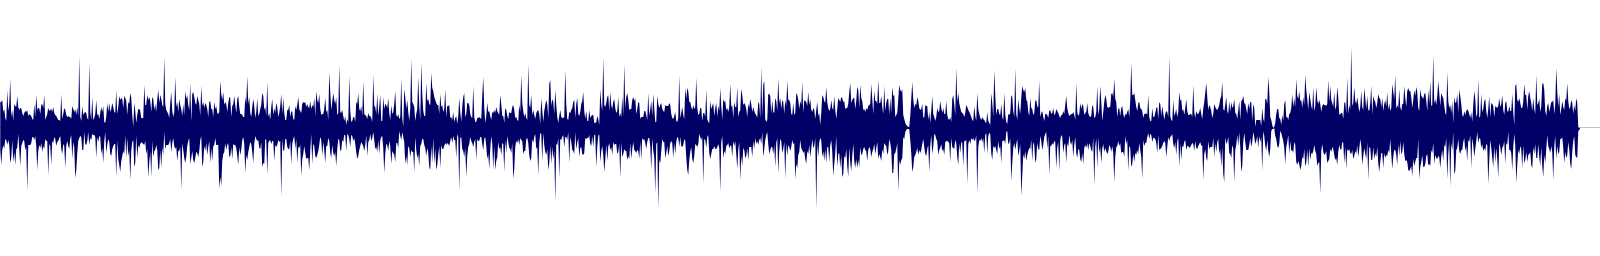 waveform of track #129624